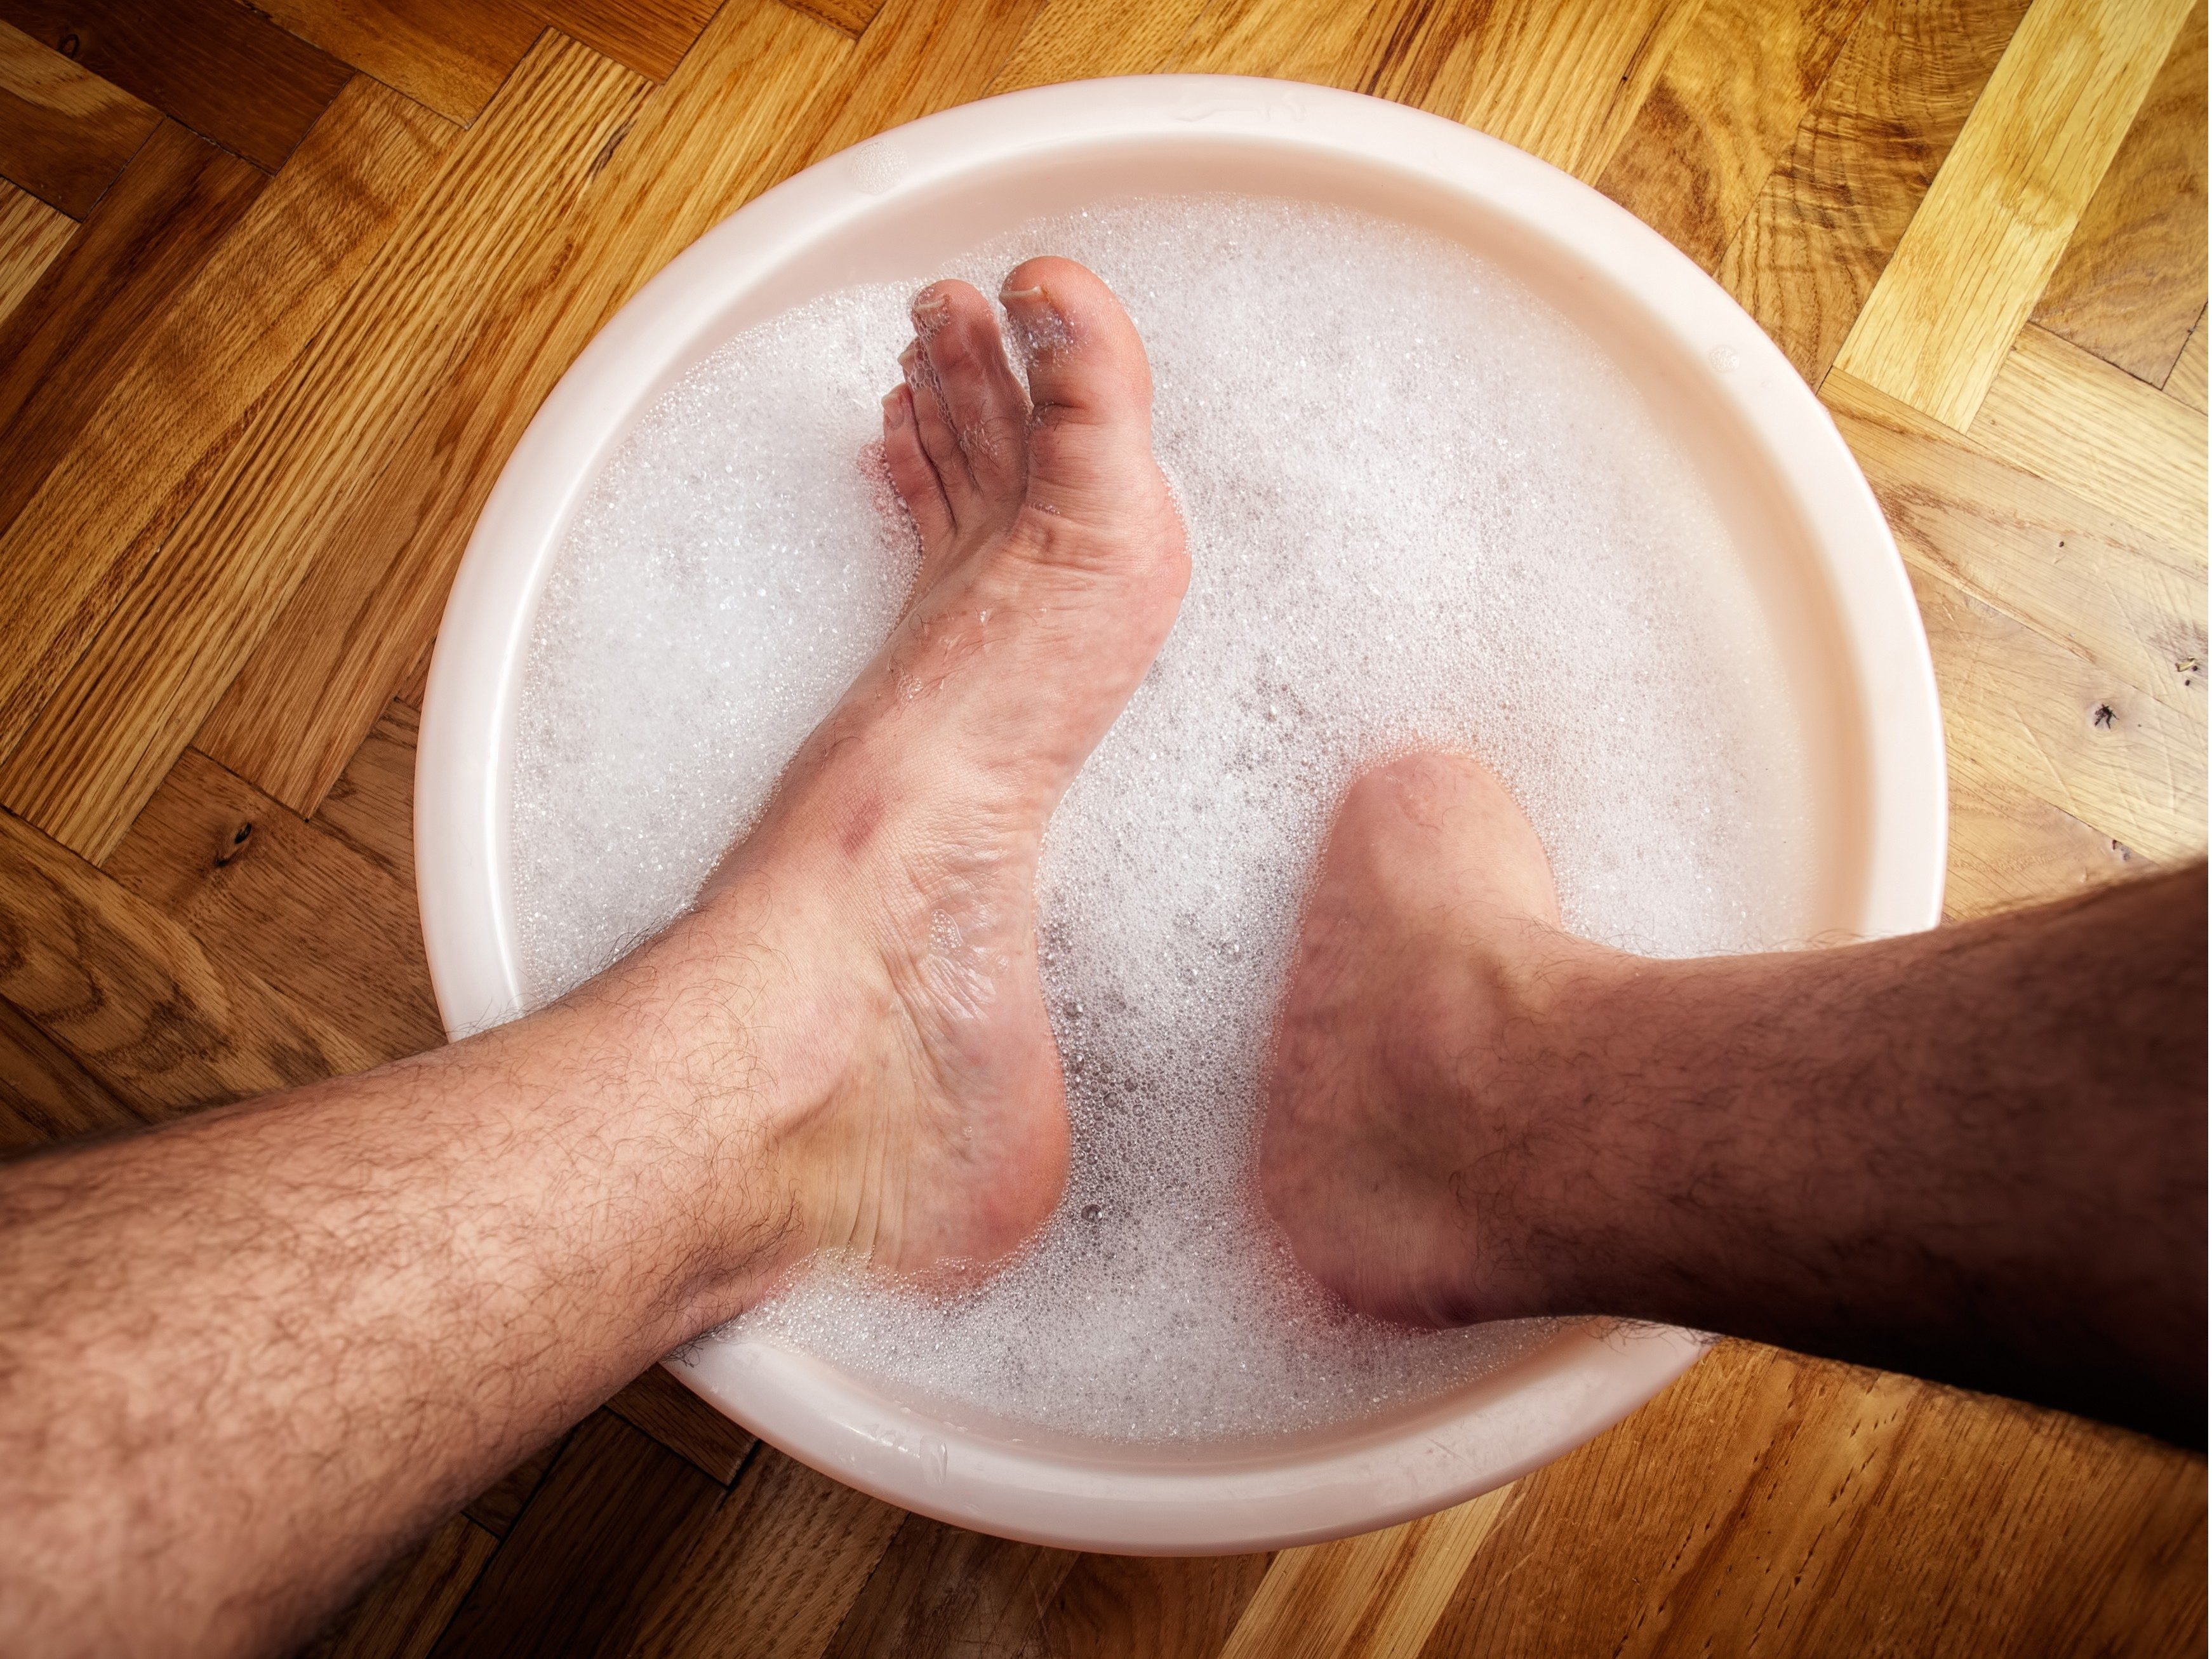 7. Soak your feet in Burow's solution